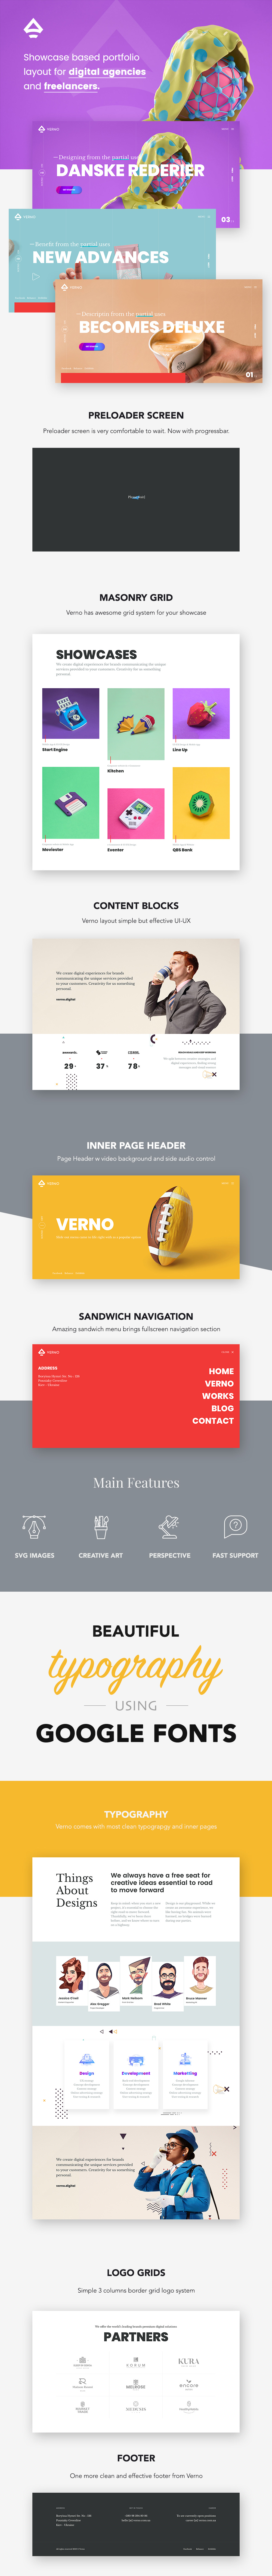 Verno | Creative Showcases for Agencies - 1